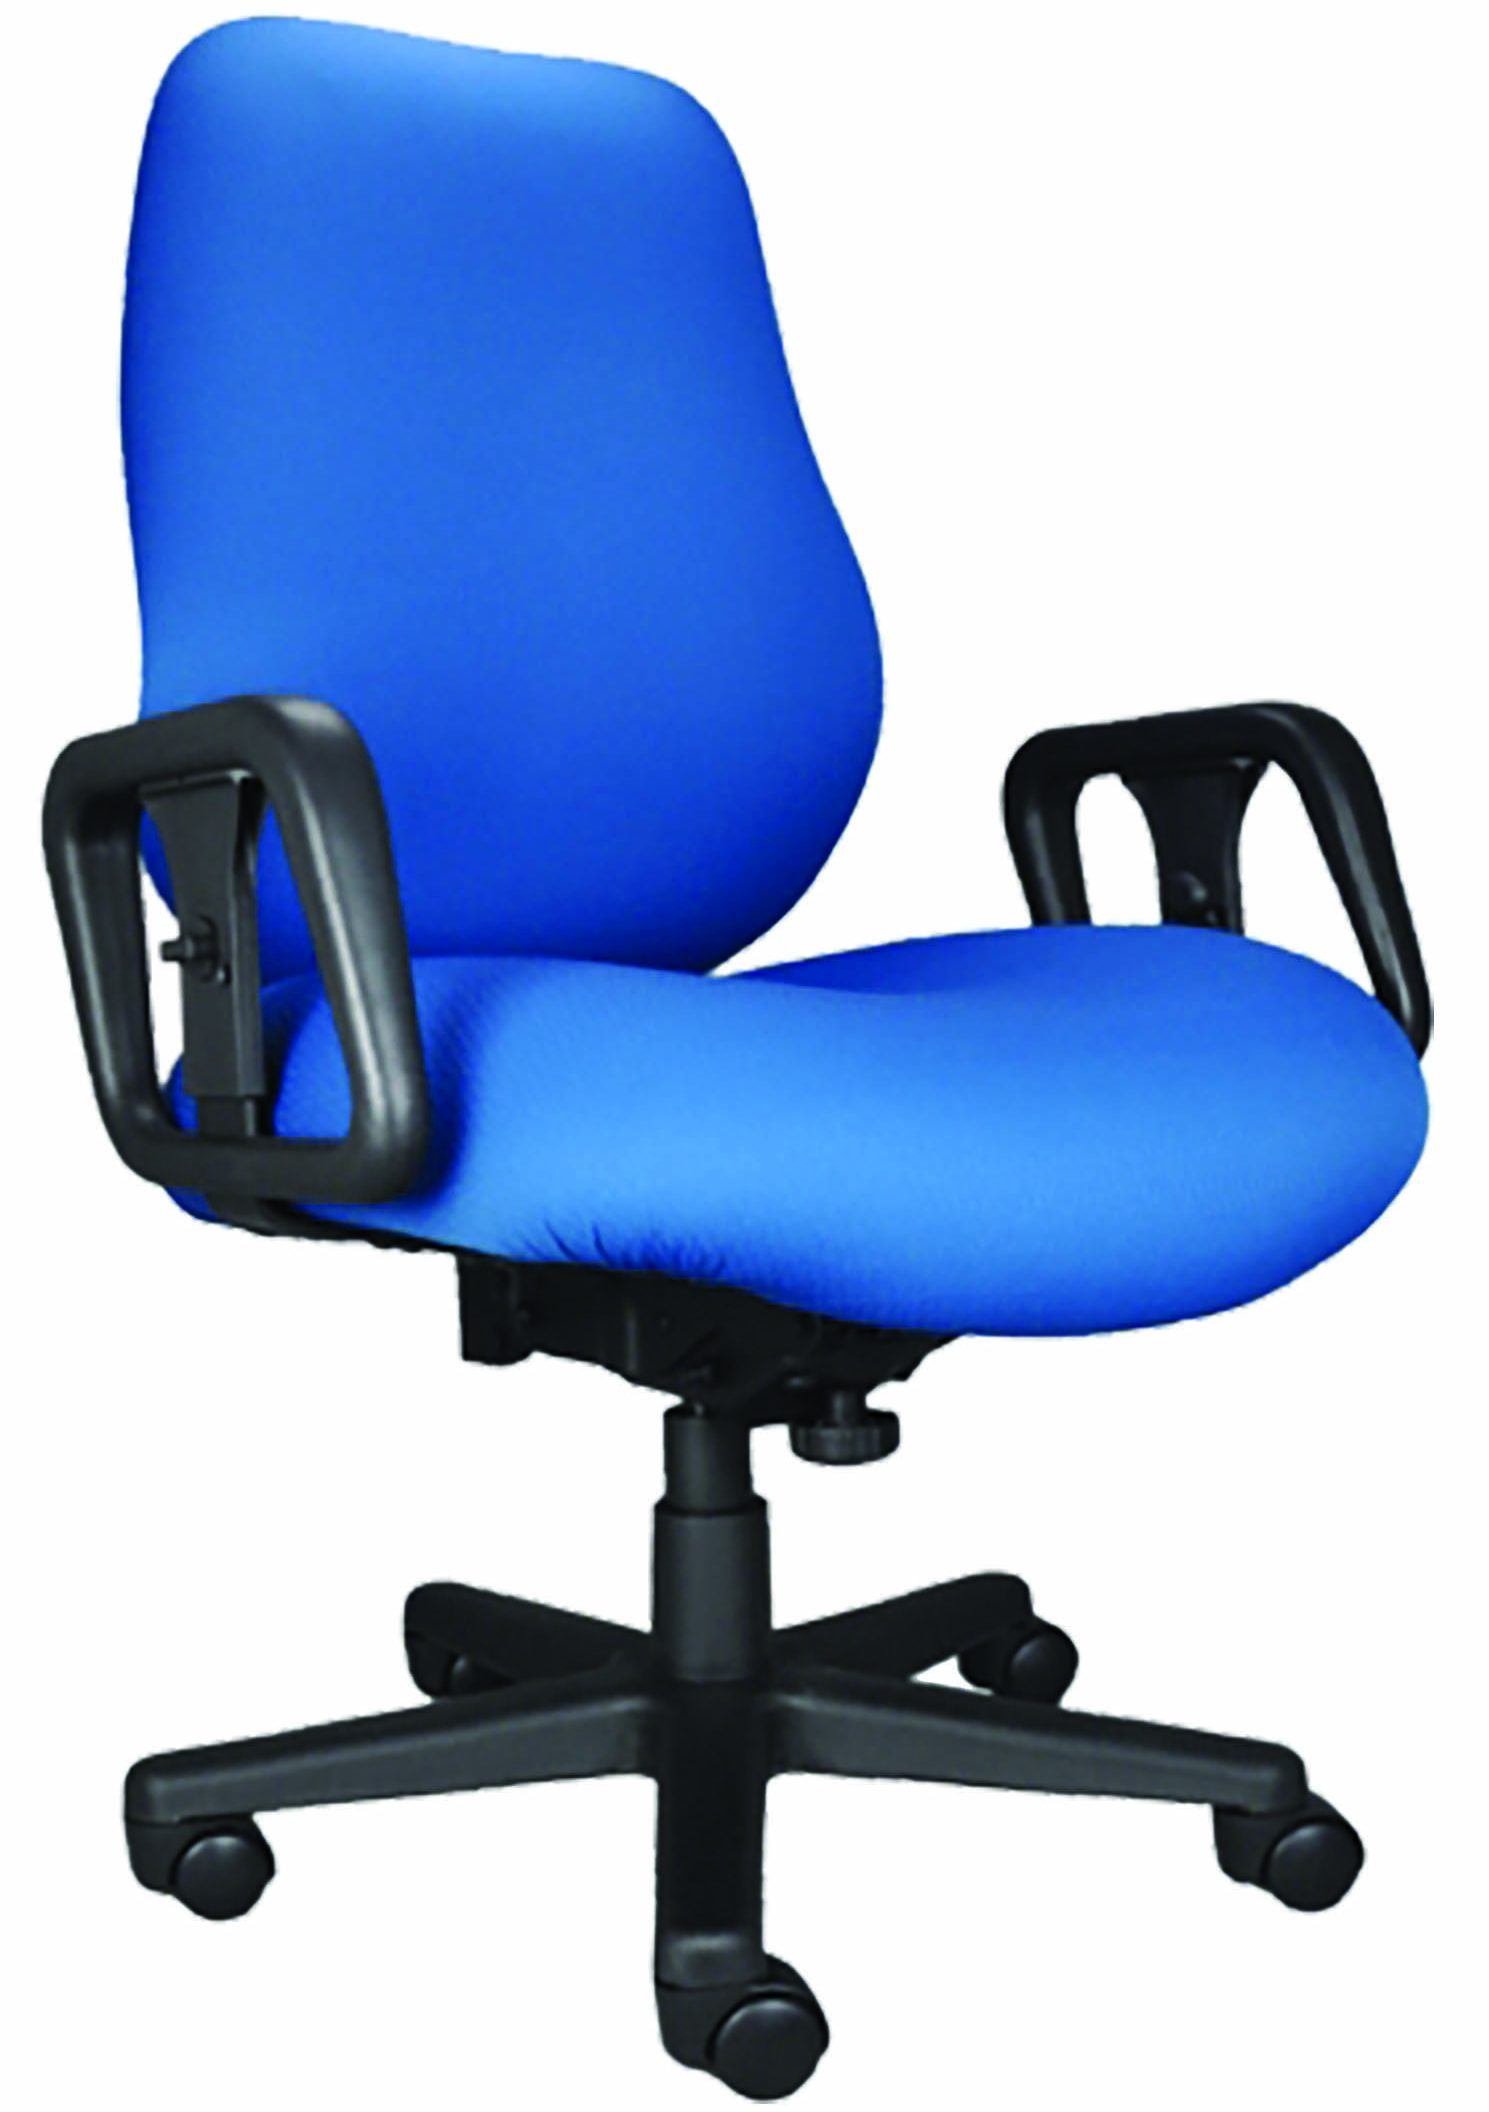 Blue Big & Tall Chair with arms, wheels, and 5-prong base